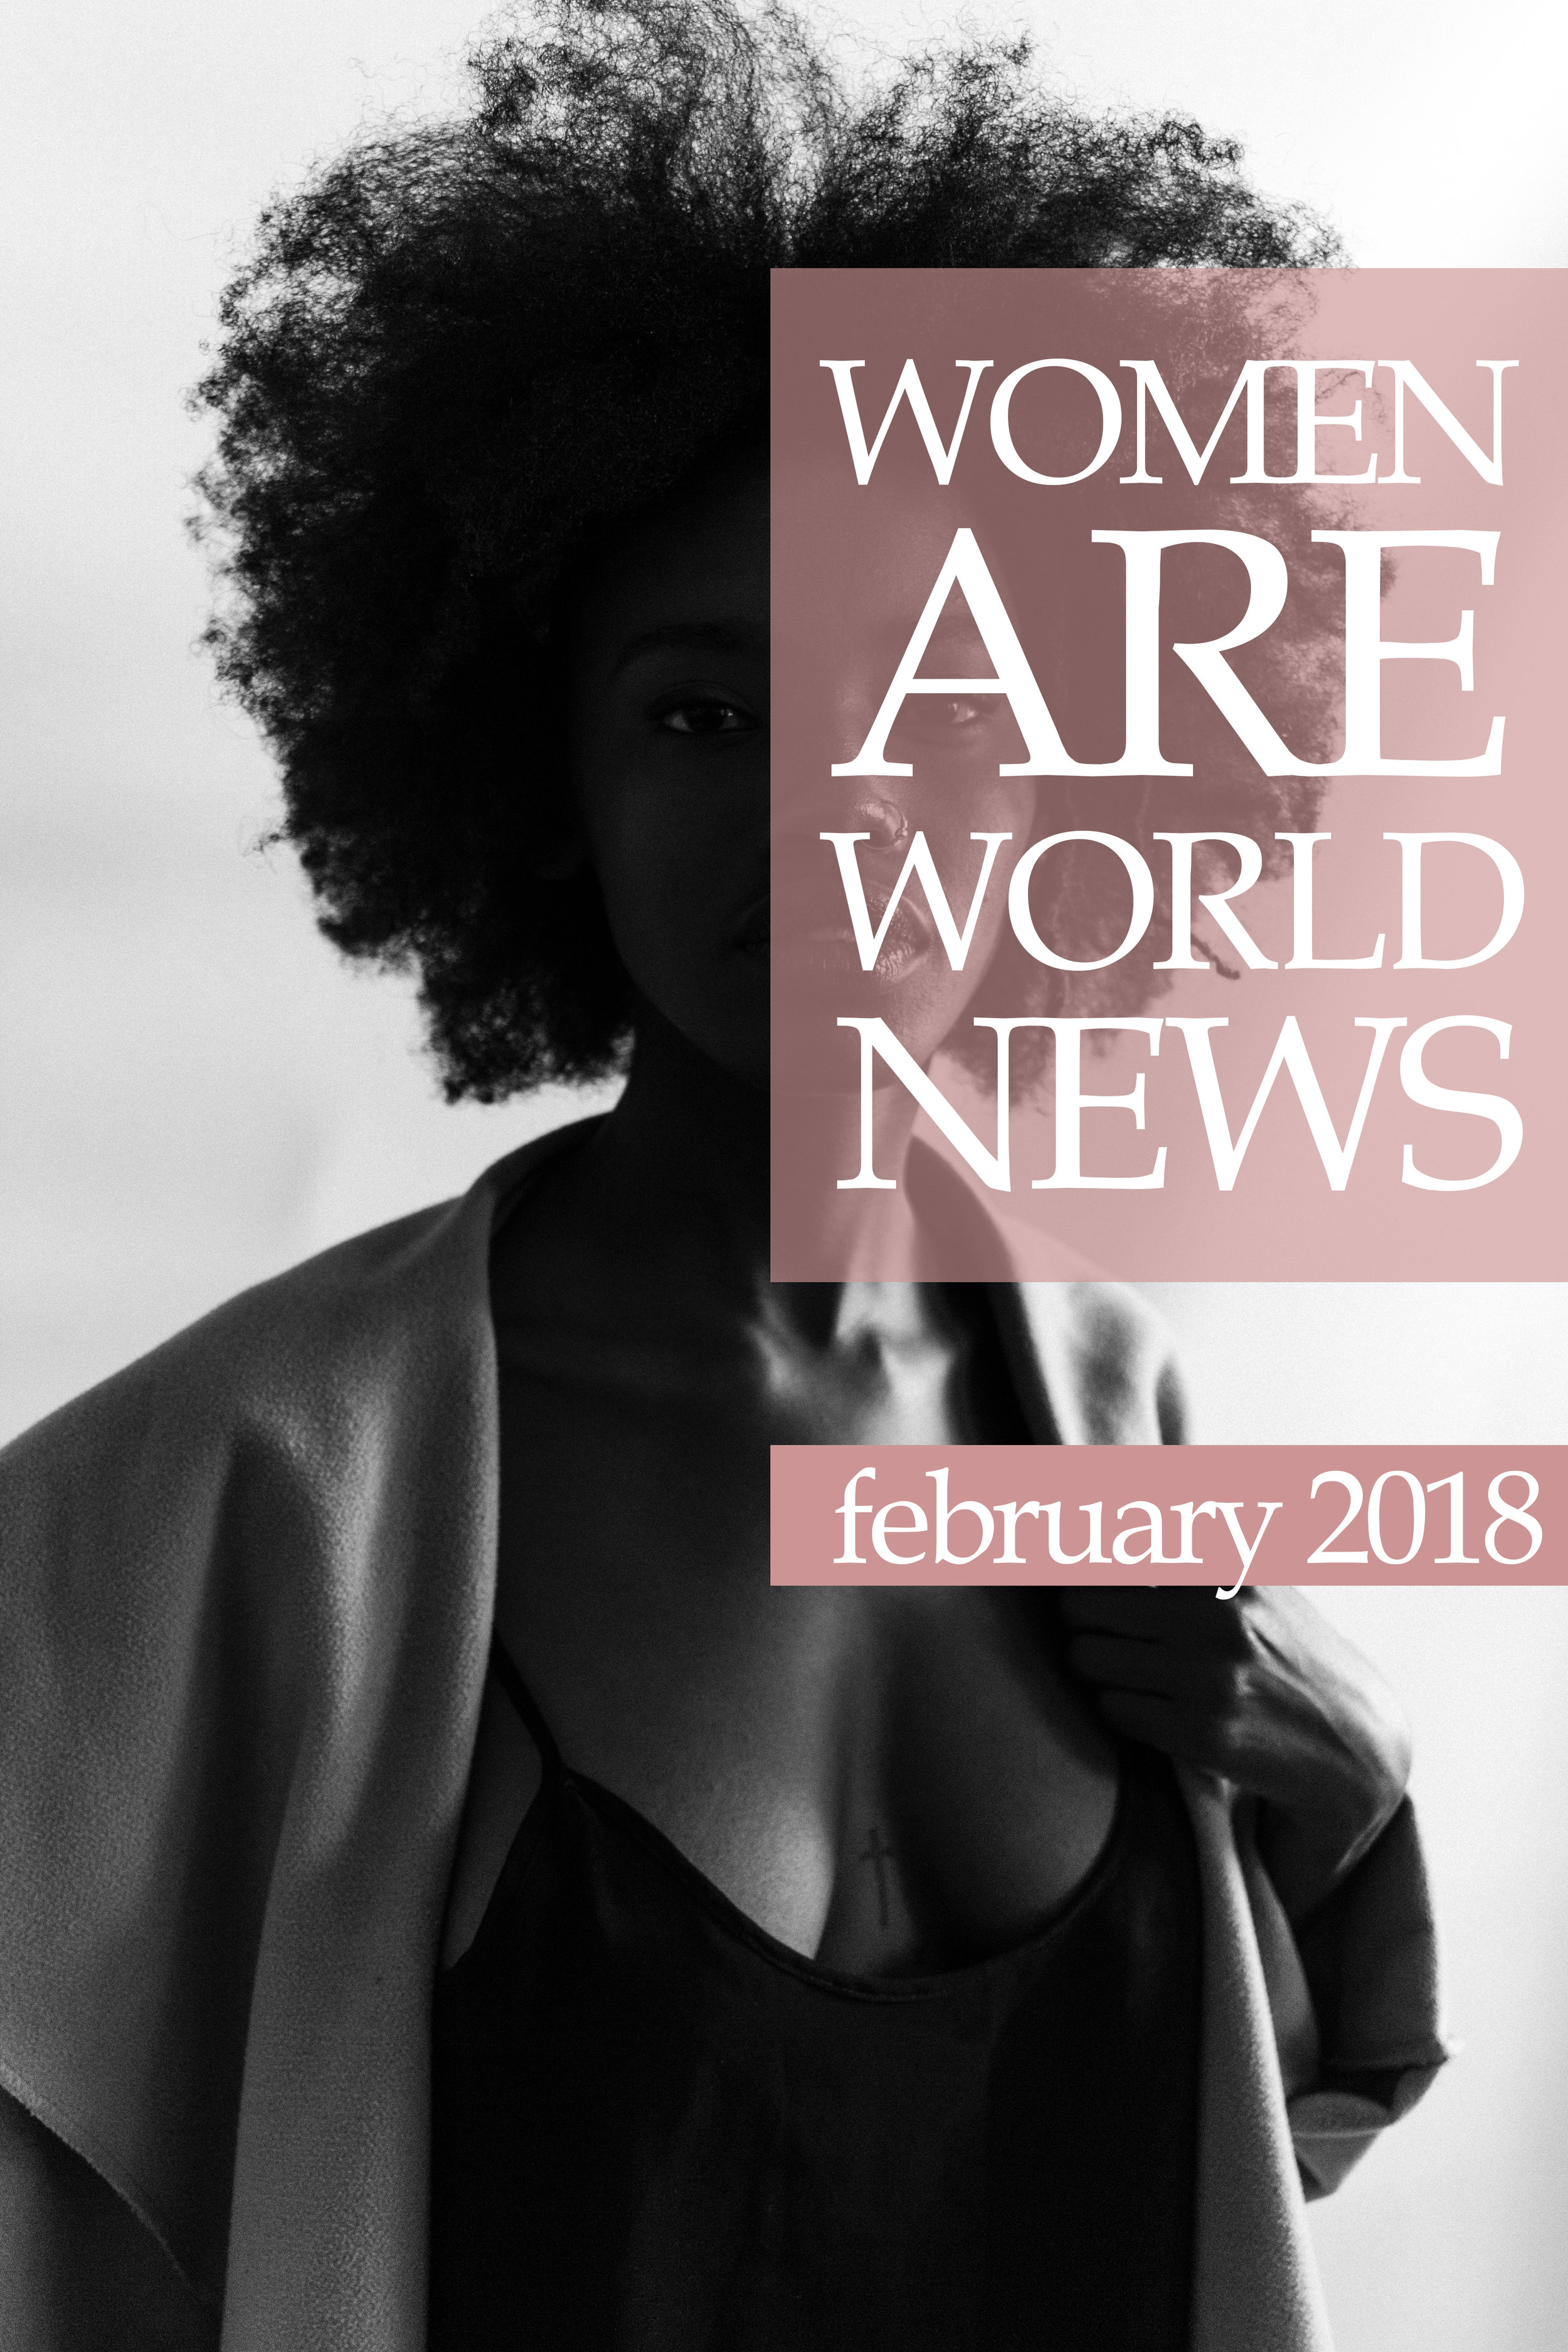 Blog header created for Ladies of Steemit's monthly news curation.